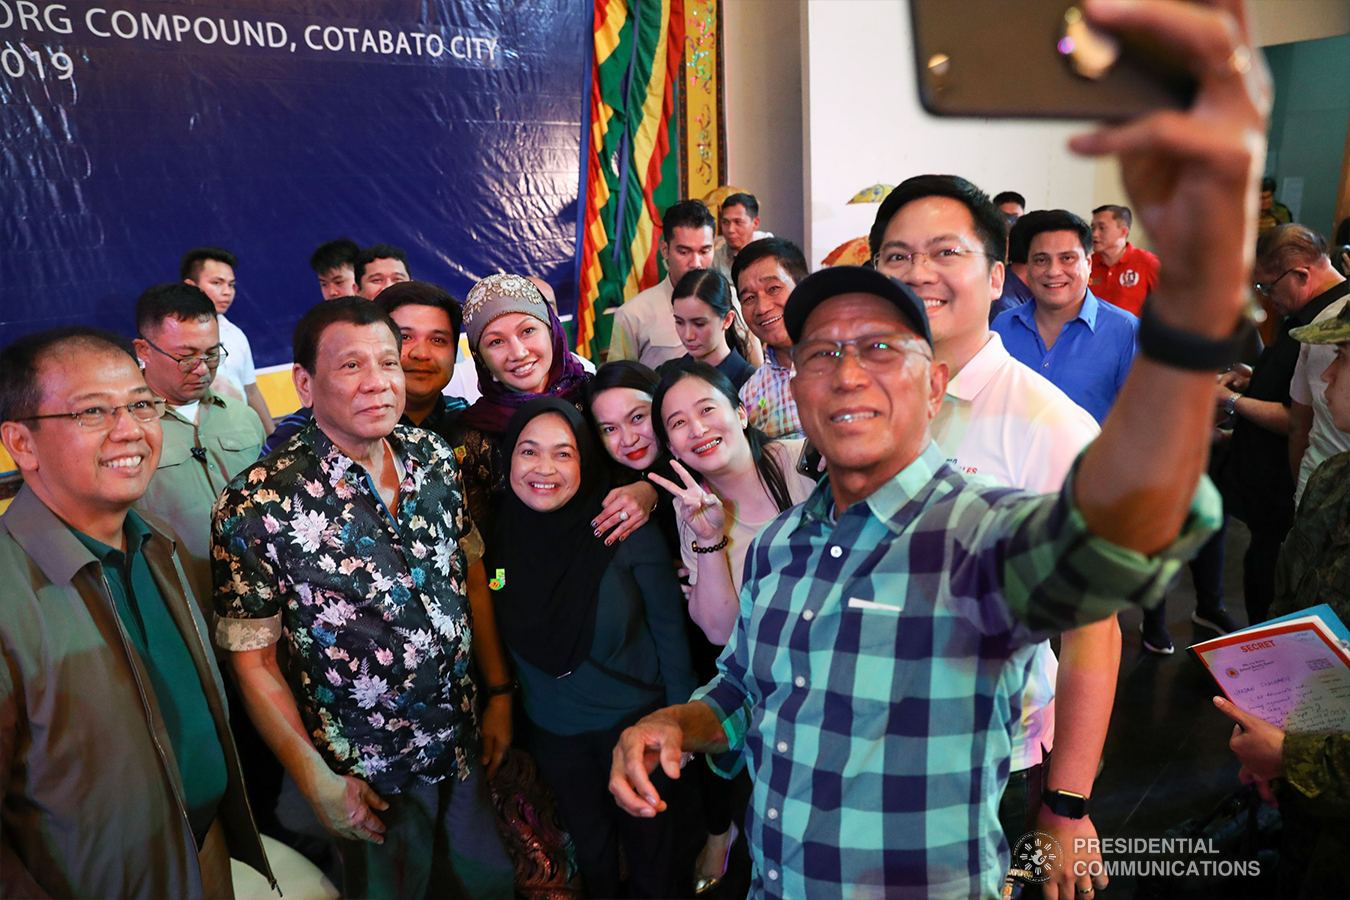 President Rodrigo Roa Duterte poses for a groufie with Presidential Adviser on the Peace Process Carlito Galvez Jr., National Security Adviser Hermogenes Esperon Jr., Defense Secretary Delfin Lorenzana, Cabinet Secretary Karlo Nograles, and some guests during the Peace Assembly for the Ratification of Republic Act No. 11054 or the Bangsamoro Organic Law (BOL), held at the Shariff Kabunsuan Cultural Complex in Cotabato City on January 18, 2019. ROBINSON NIÑAL JR./PRESIDENTIAL PHOTO